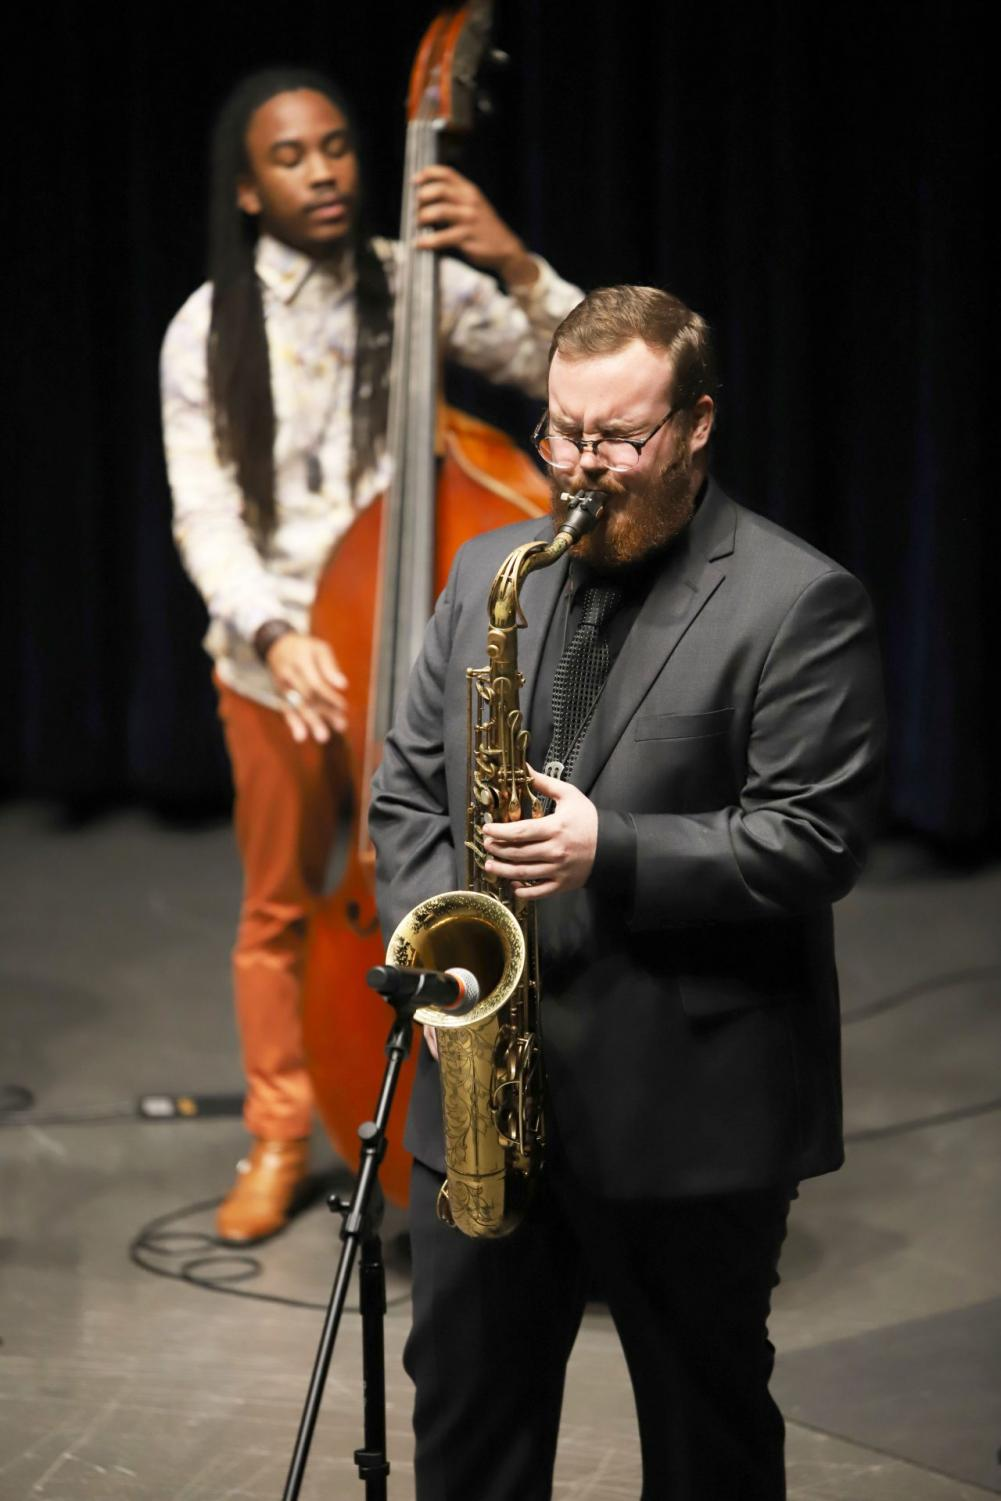 Jack Smith plays the tenor saxophone during a Jazz Performance on Wednesday.